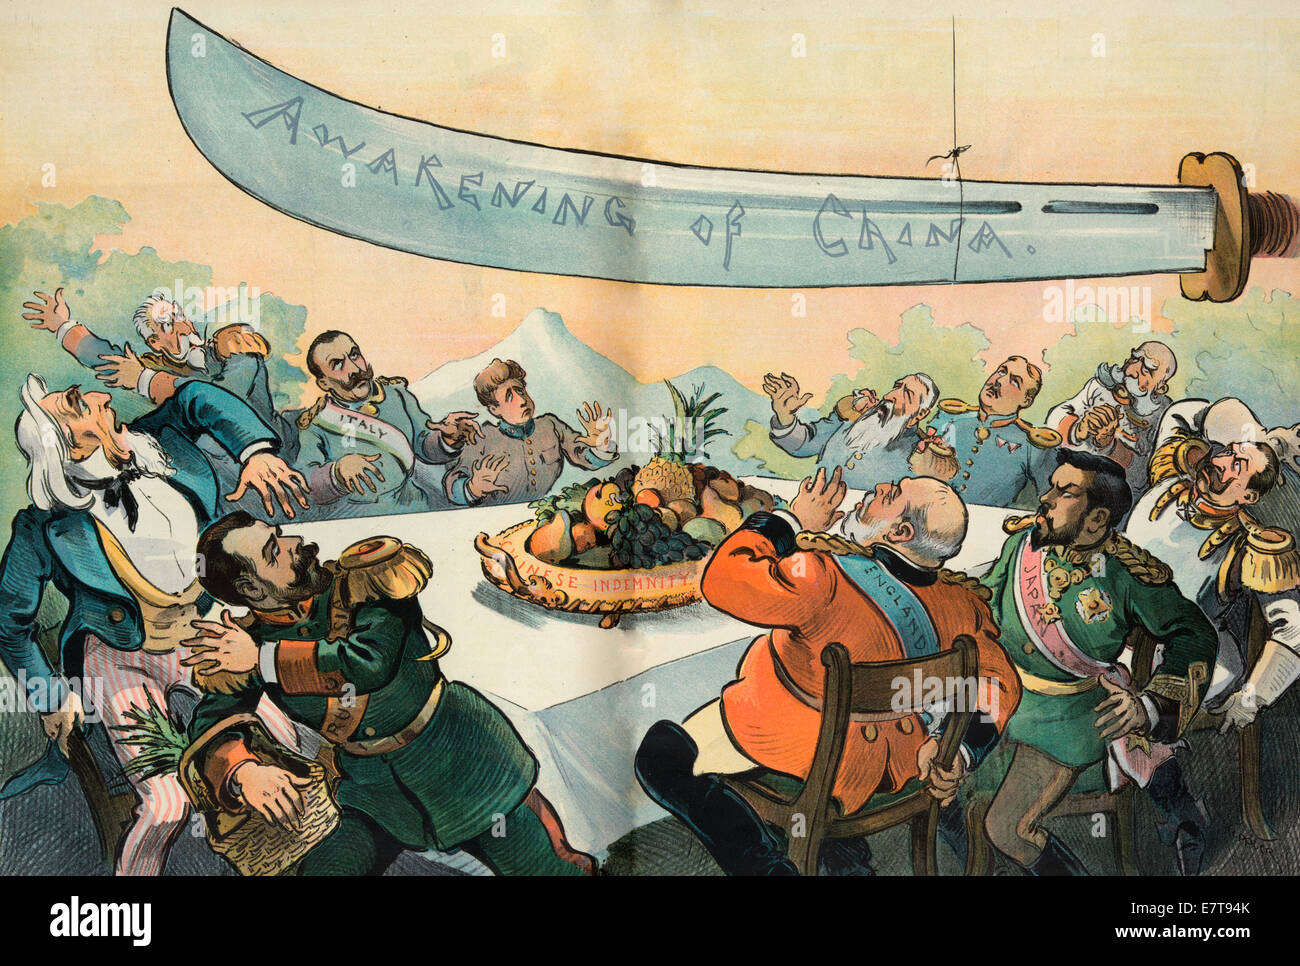 A disturbing possibility in the East - The Awakening of China - Political Cartoon, 1901 - Stock Image